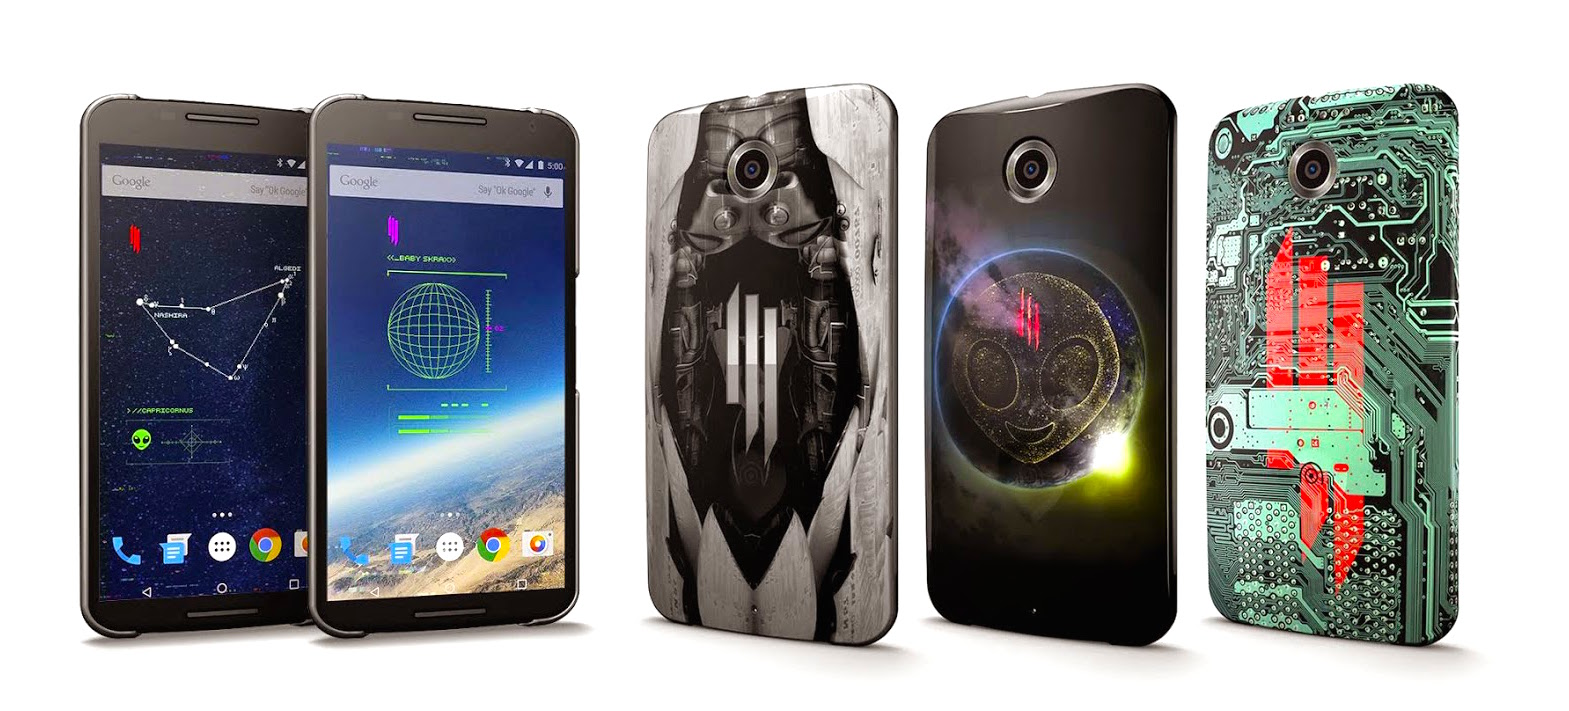 Google unveils limited edition Skrillex cases with matching live wallpapers for select Android devices